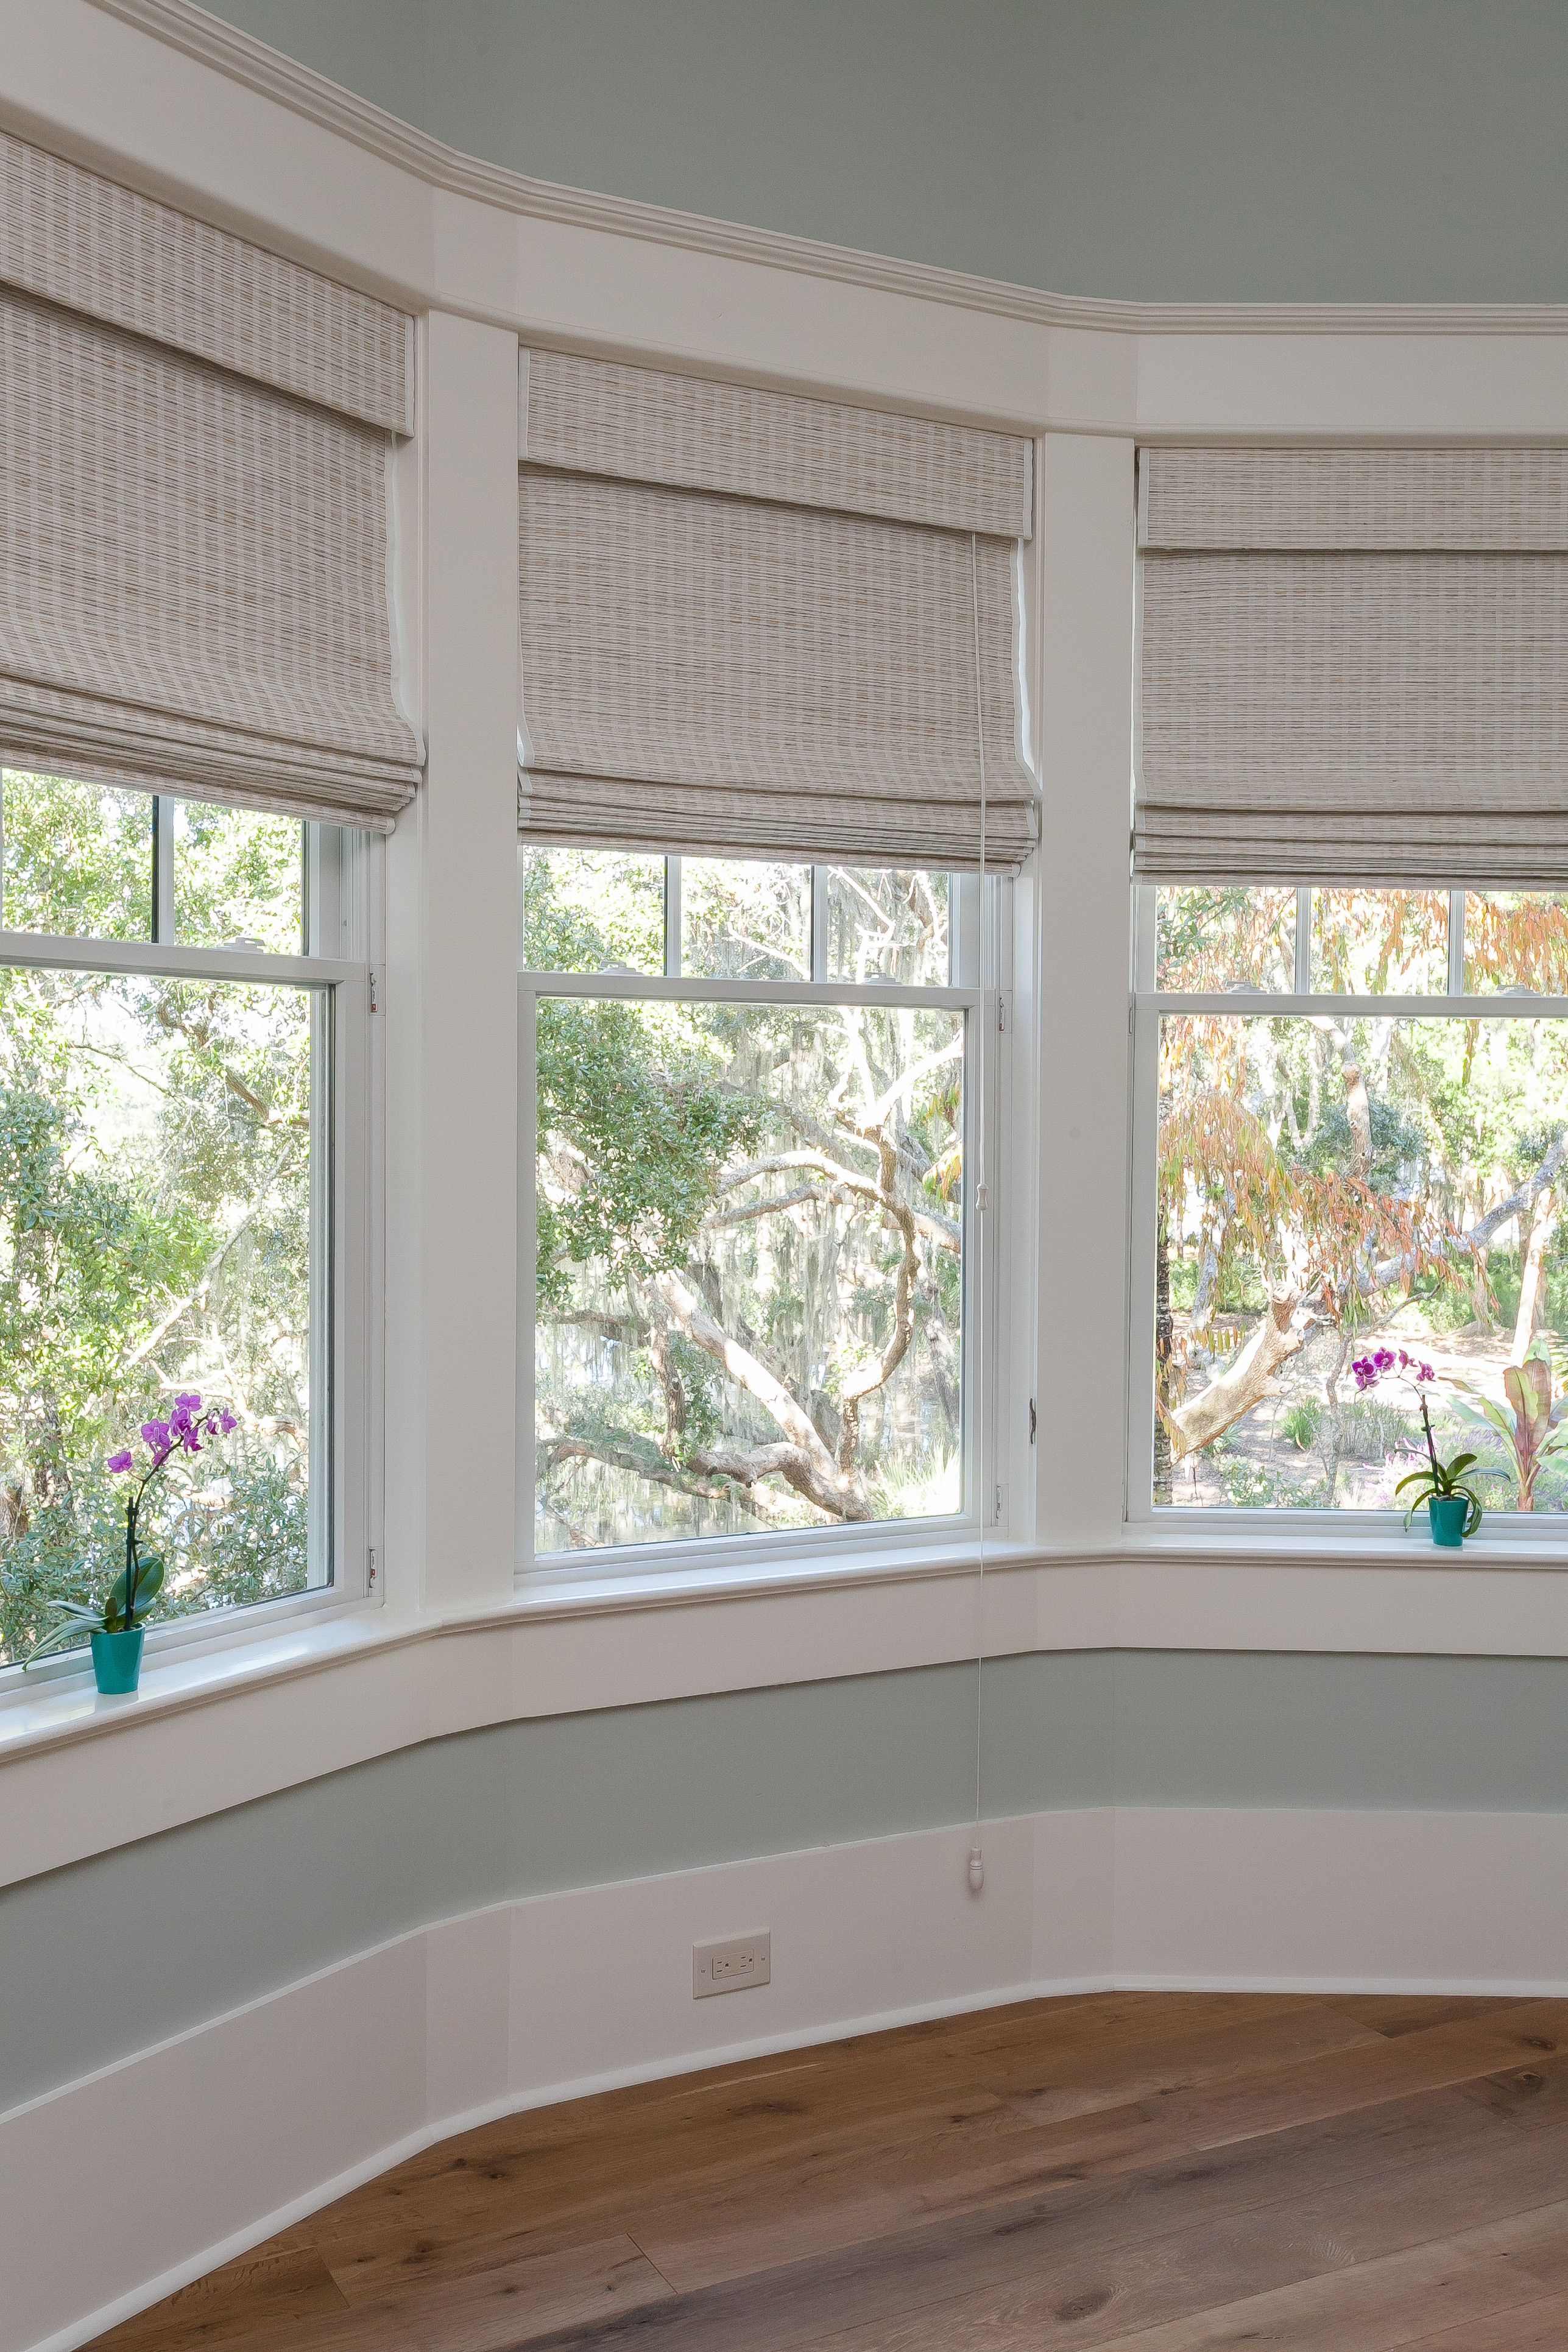 of shutter window wood shutters shades manufacturers treatments custom products blinds